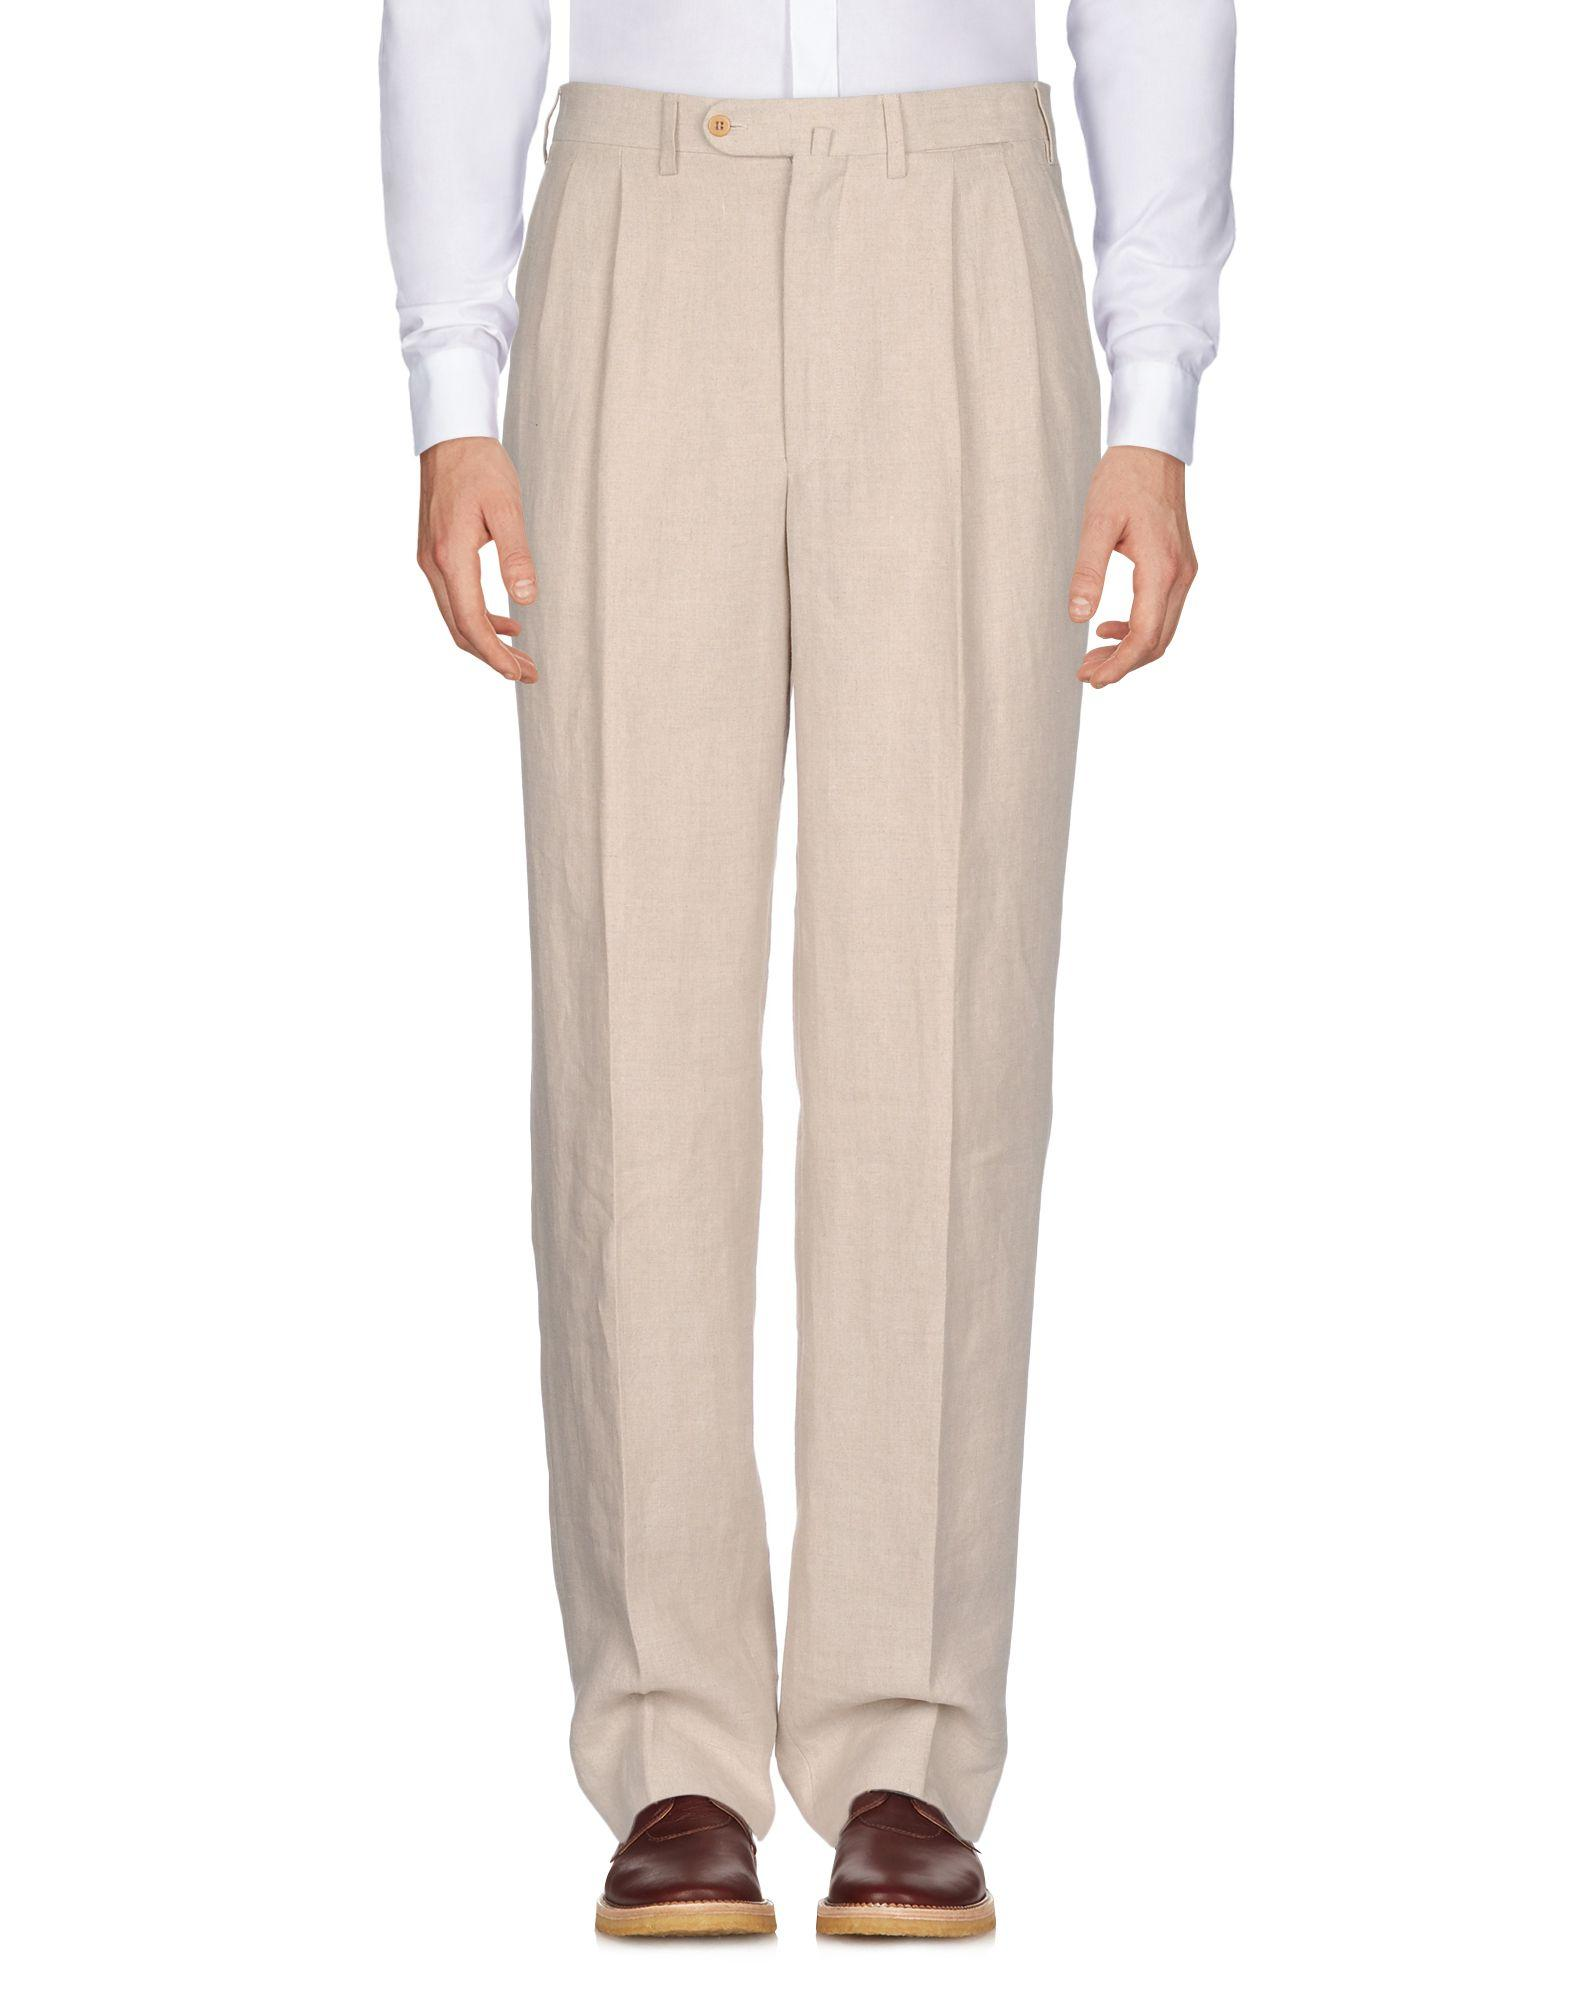 Valstar Casual Pants In Beige